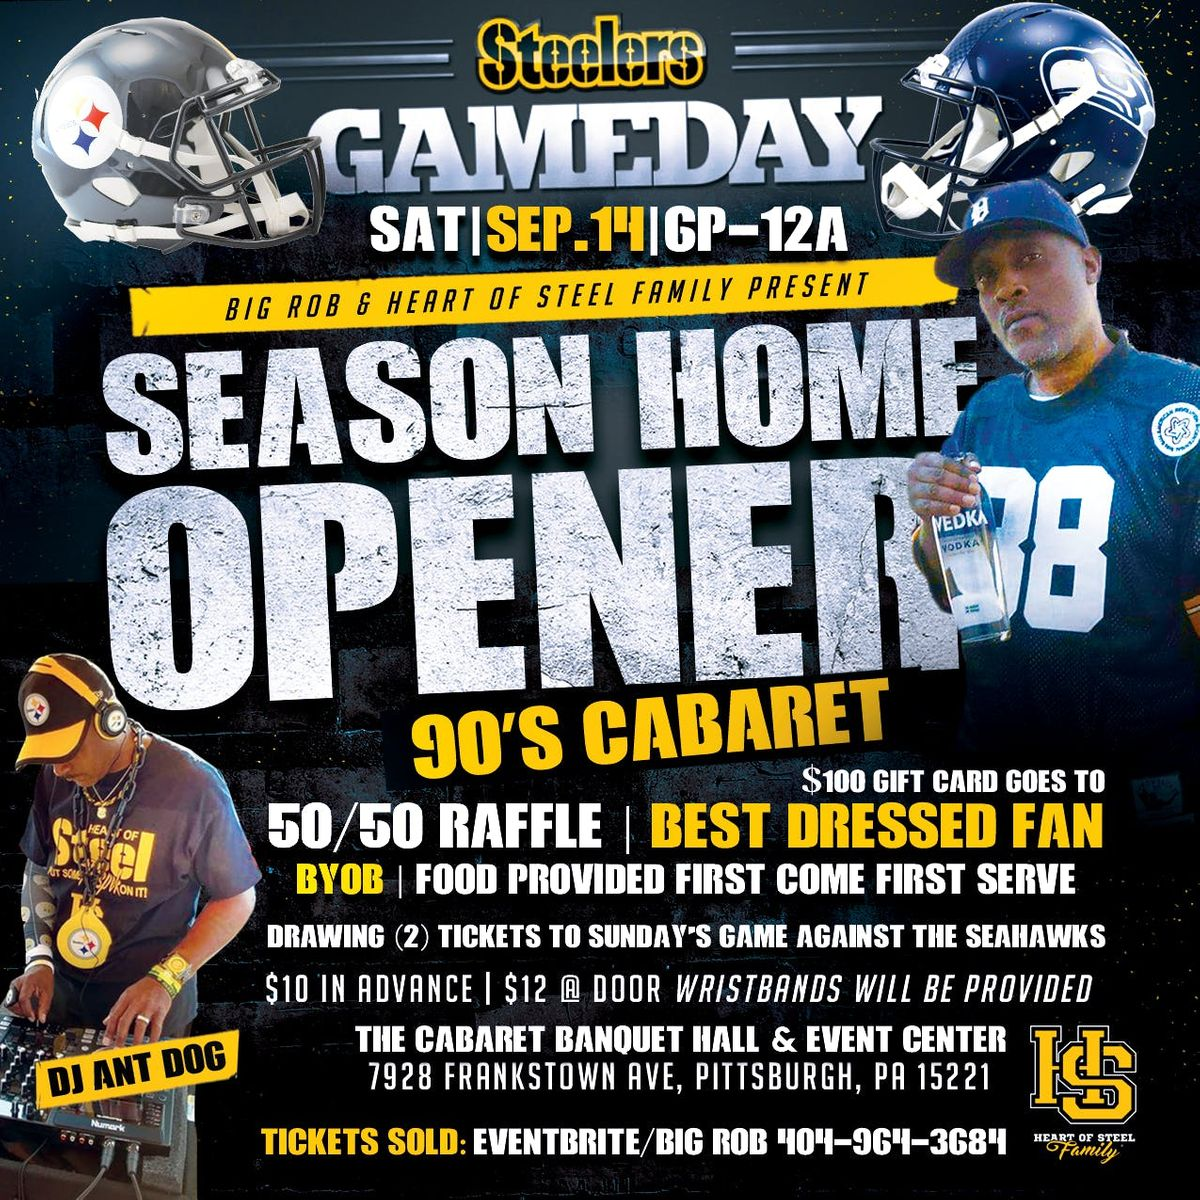 Big Rob & Heart of Steel Family Present  The season home opener Cabaret